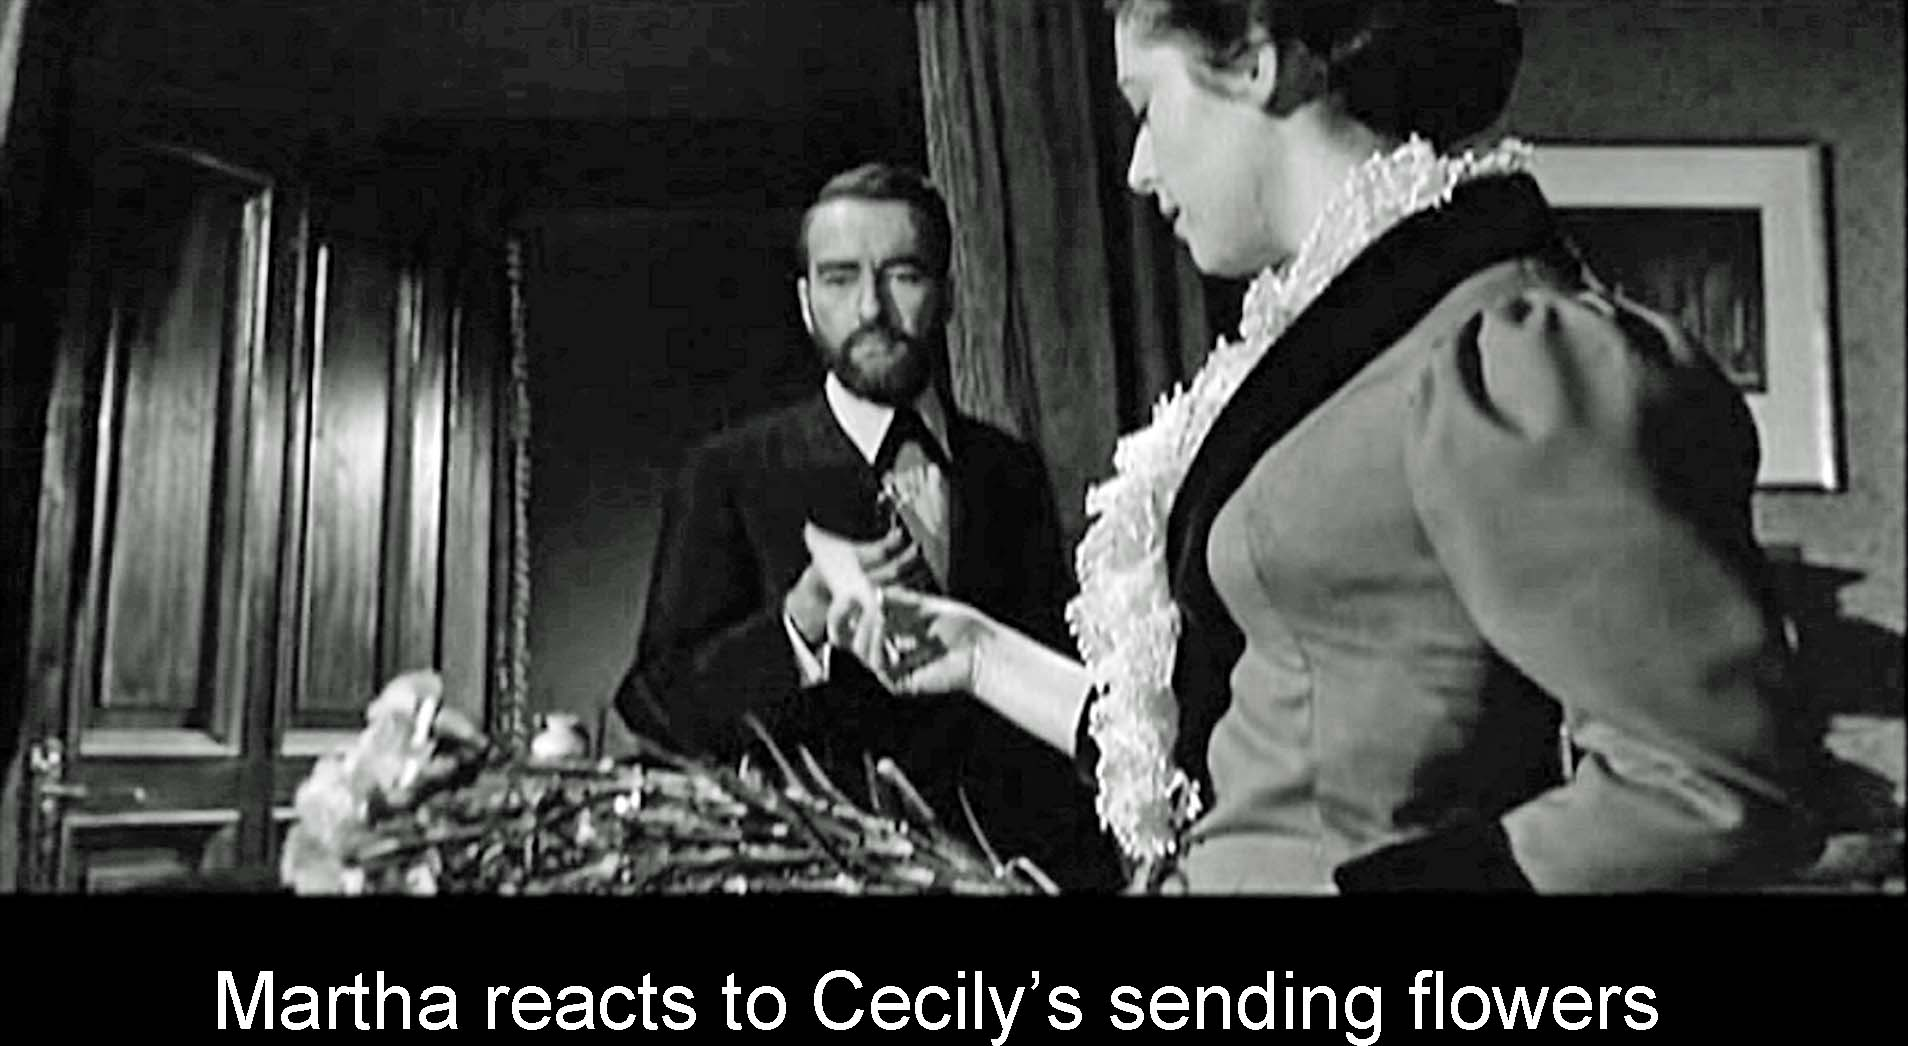 Martha reacts to Cecily's sending flowers